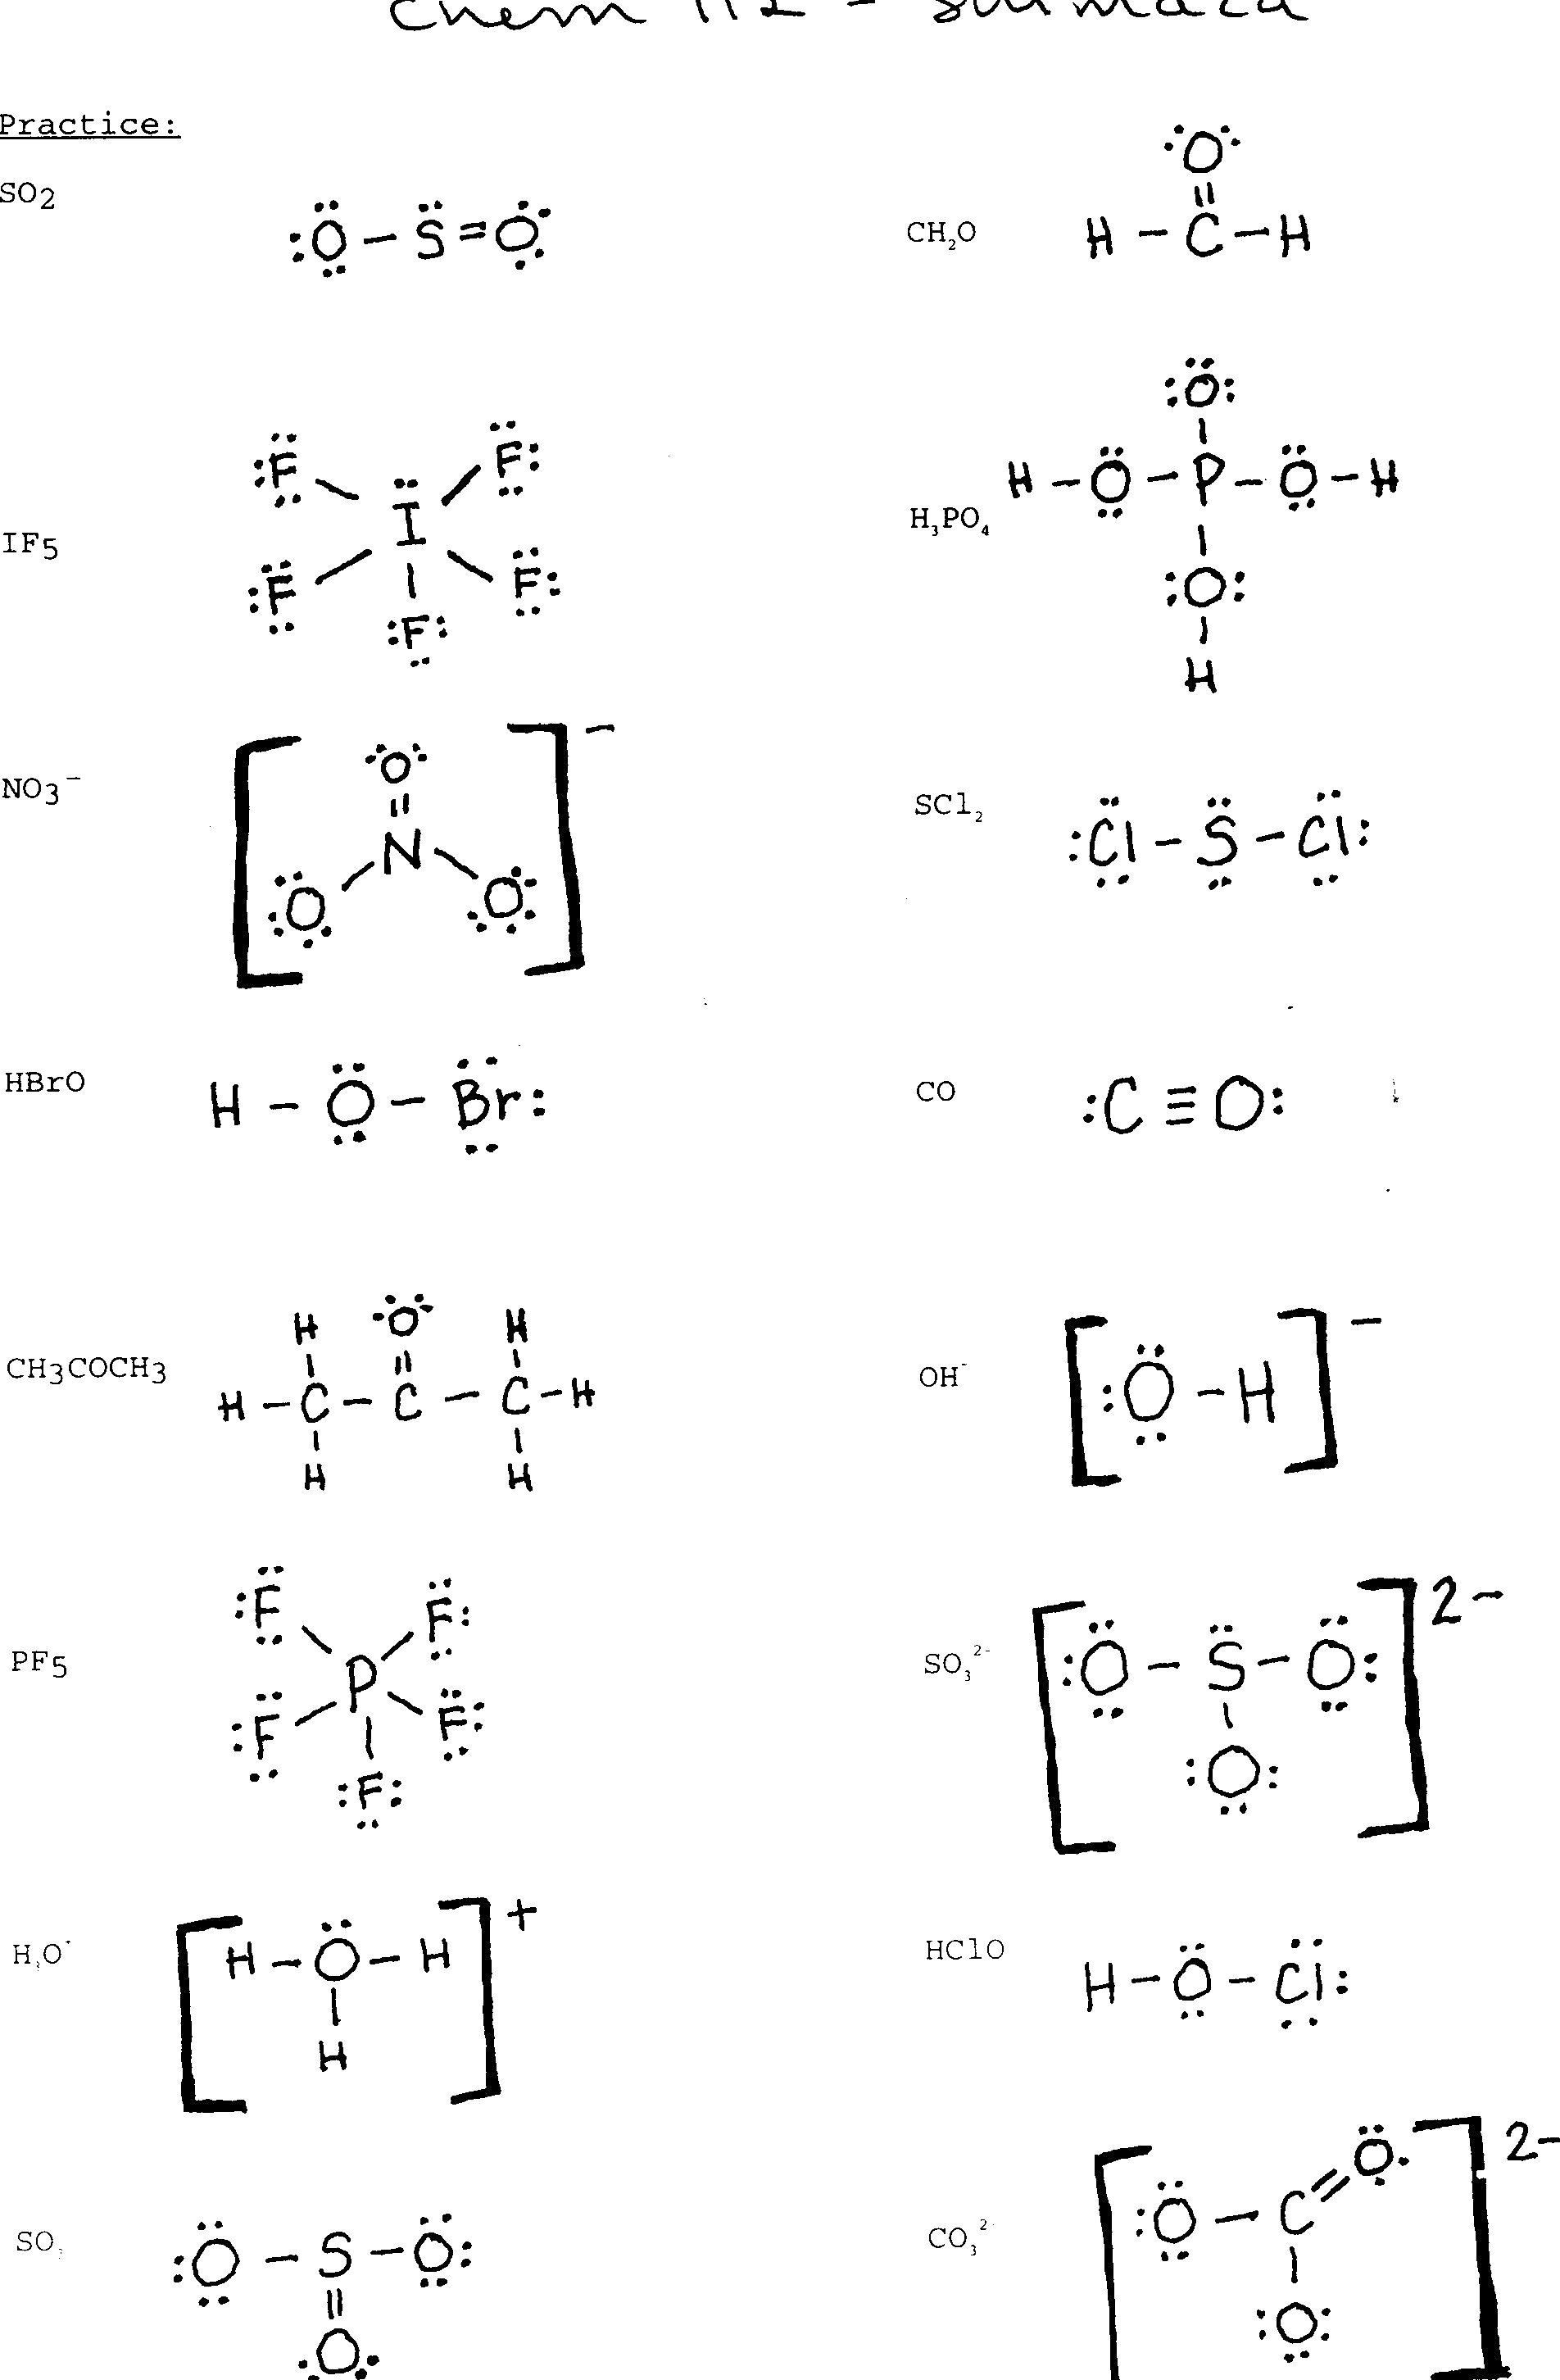 Lewis Structure Worksheet With Answers Algebra Worksheets Pedigree Also Lewis Dot Structure Worksheet With Answers